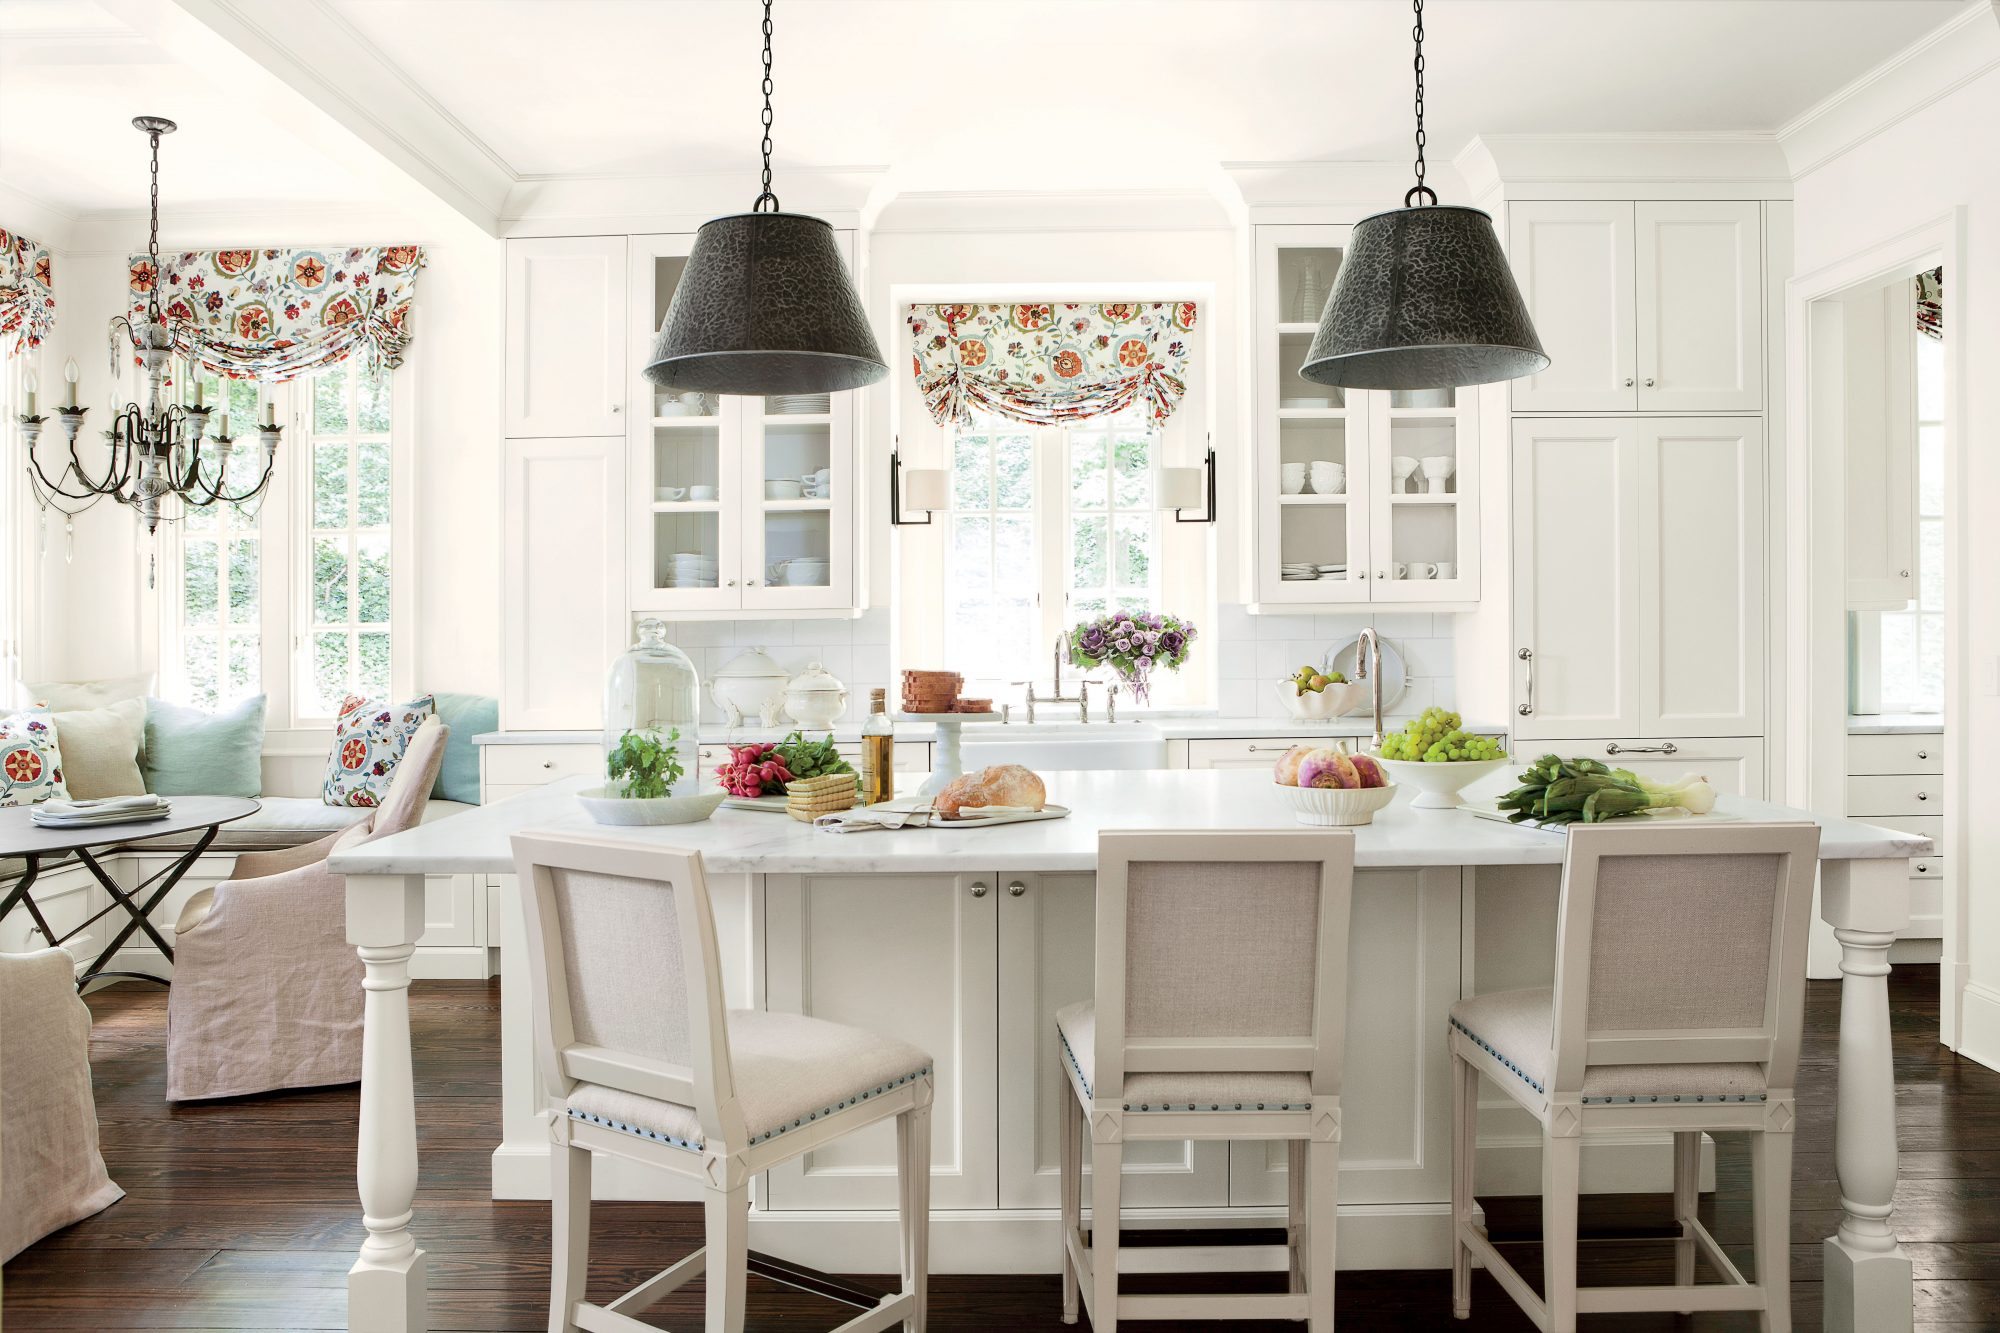 The Best White Paint for Your Kitchen - Southern Living